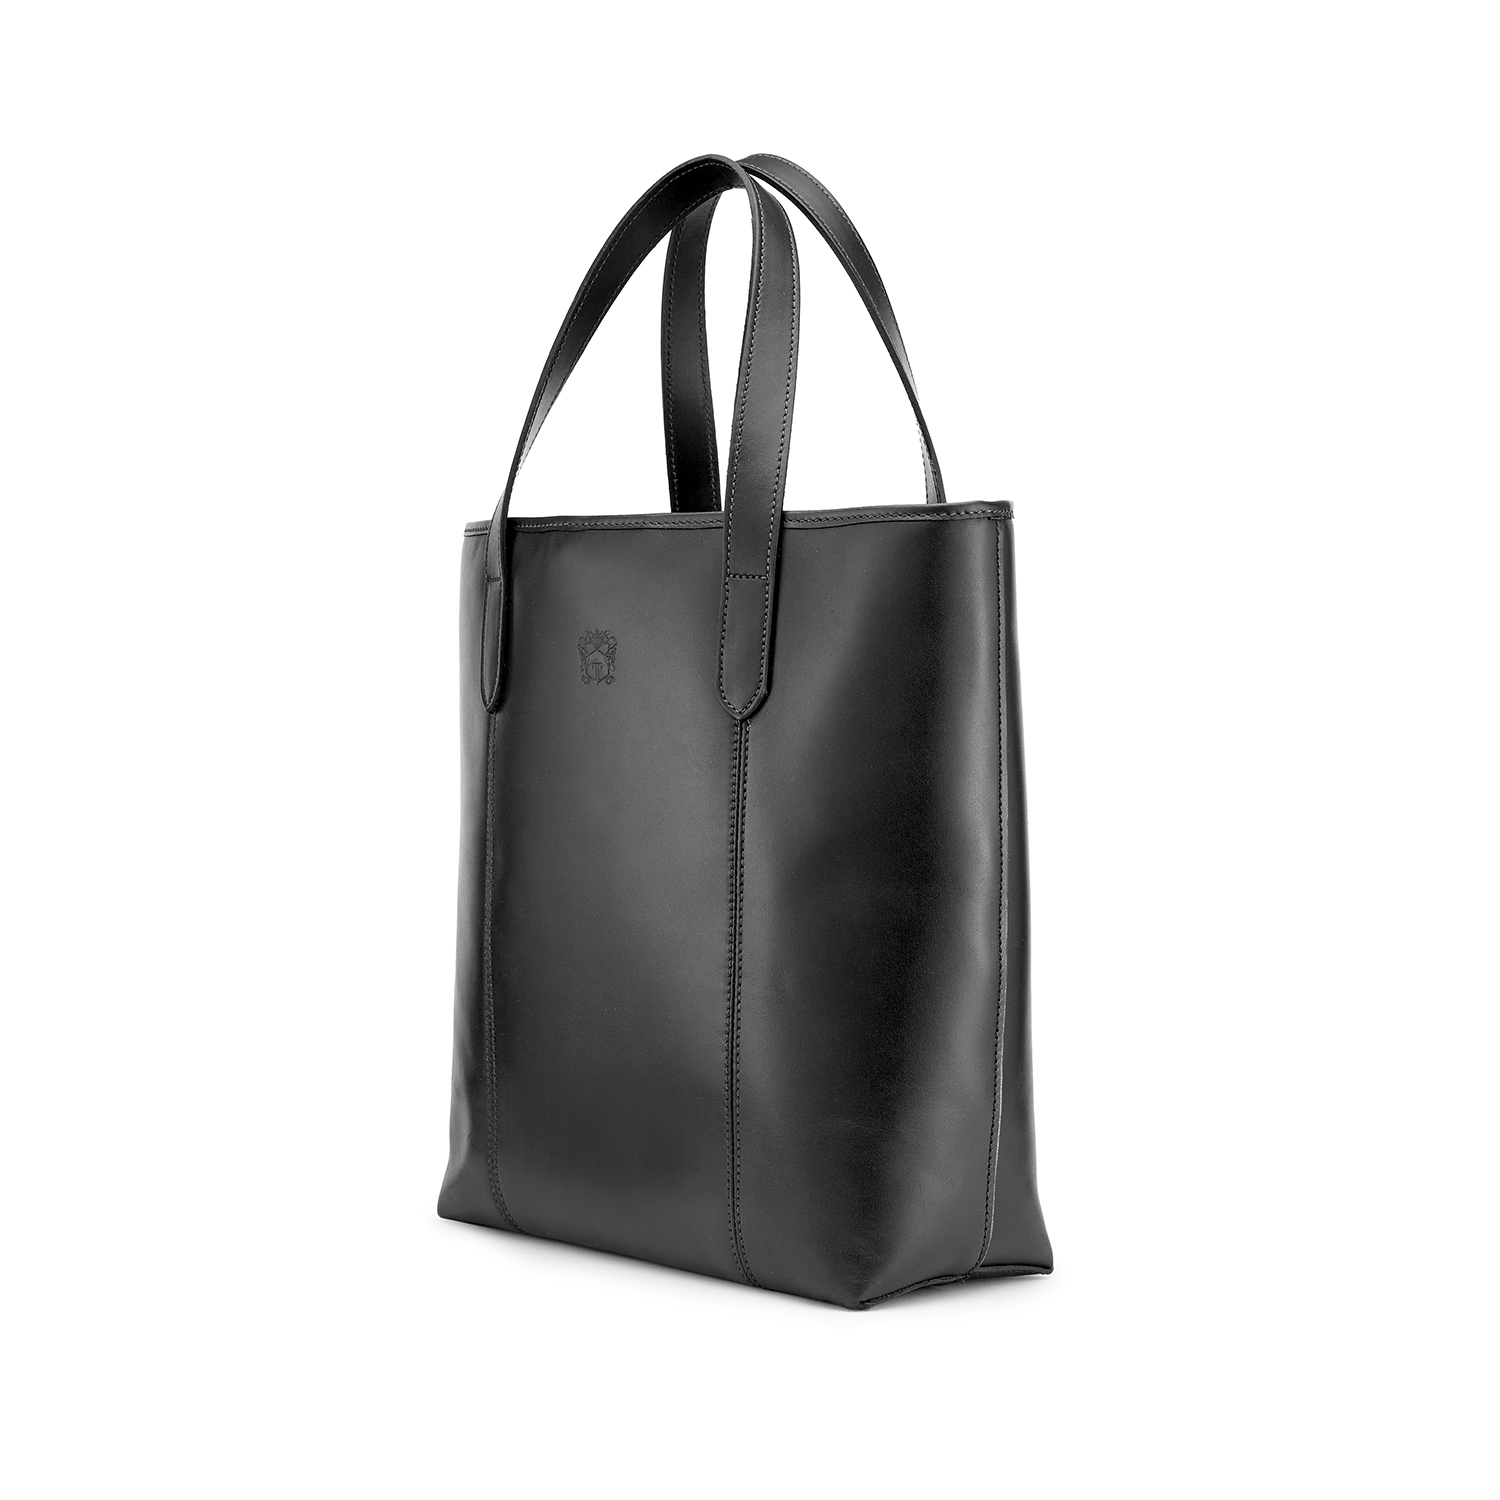 Tusting Leather Chelsea Tote Bag in Black Angle